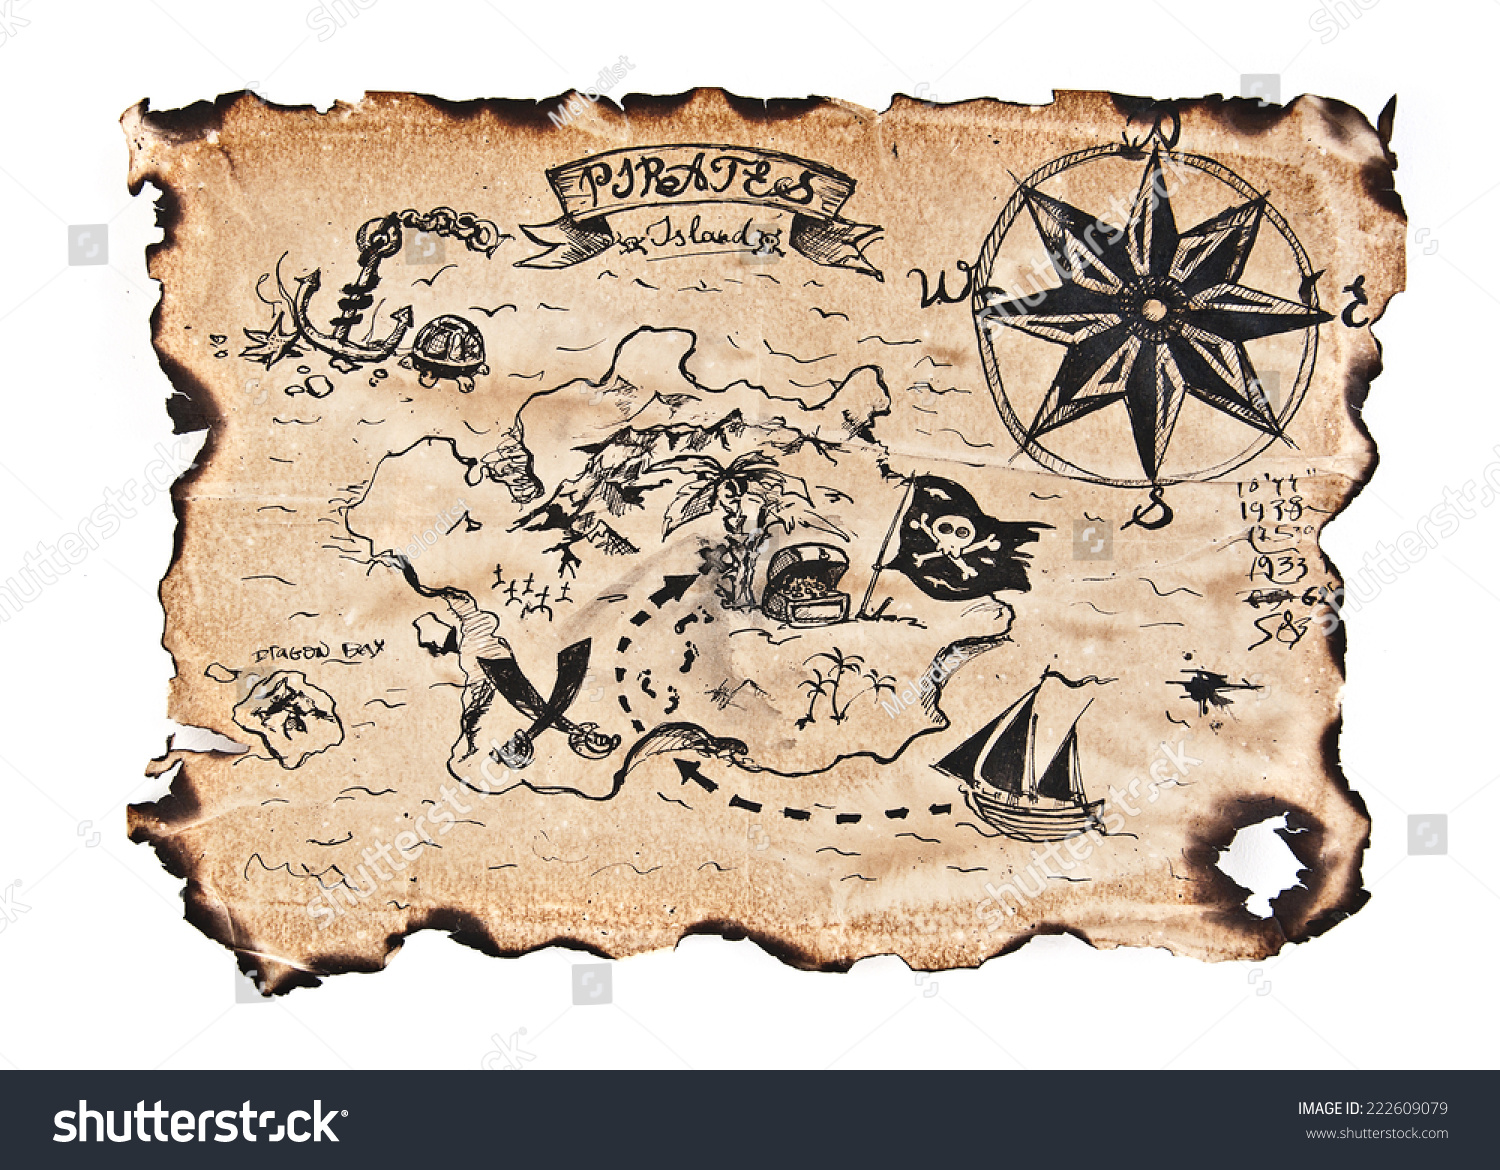 simple treasure maps vintage - photo #4